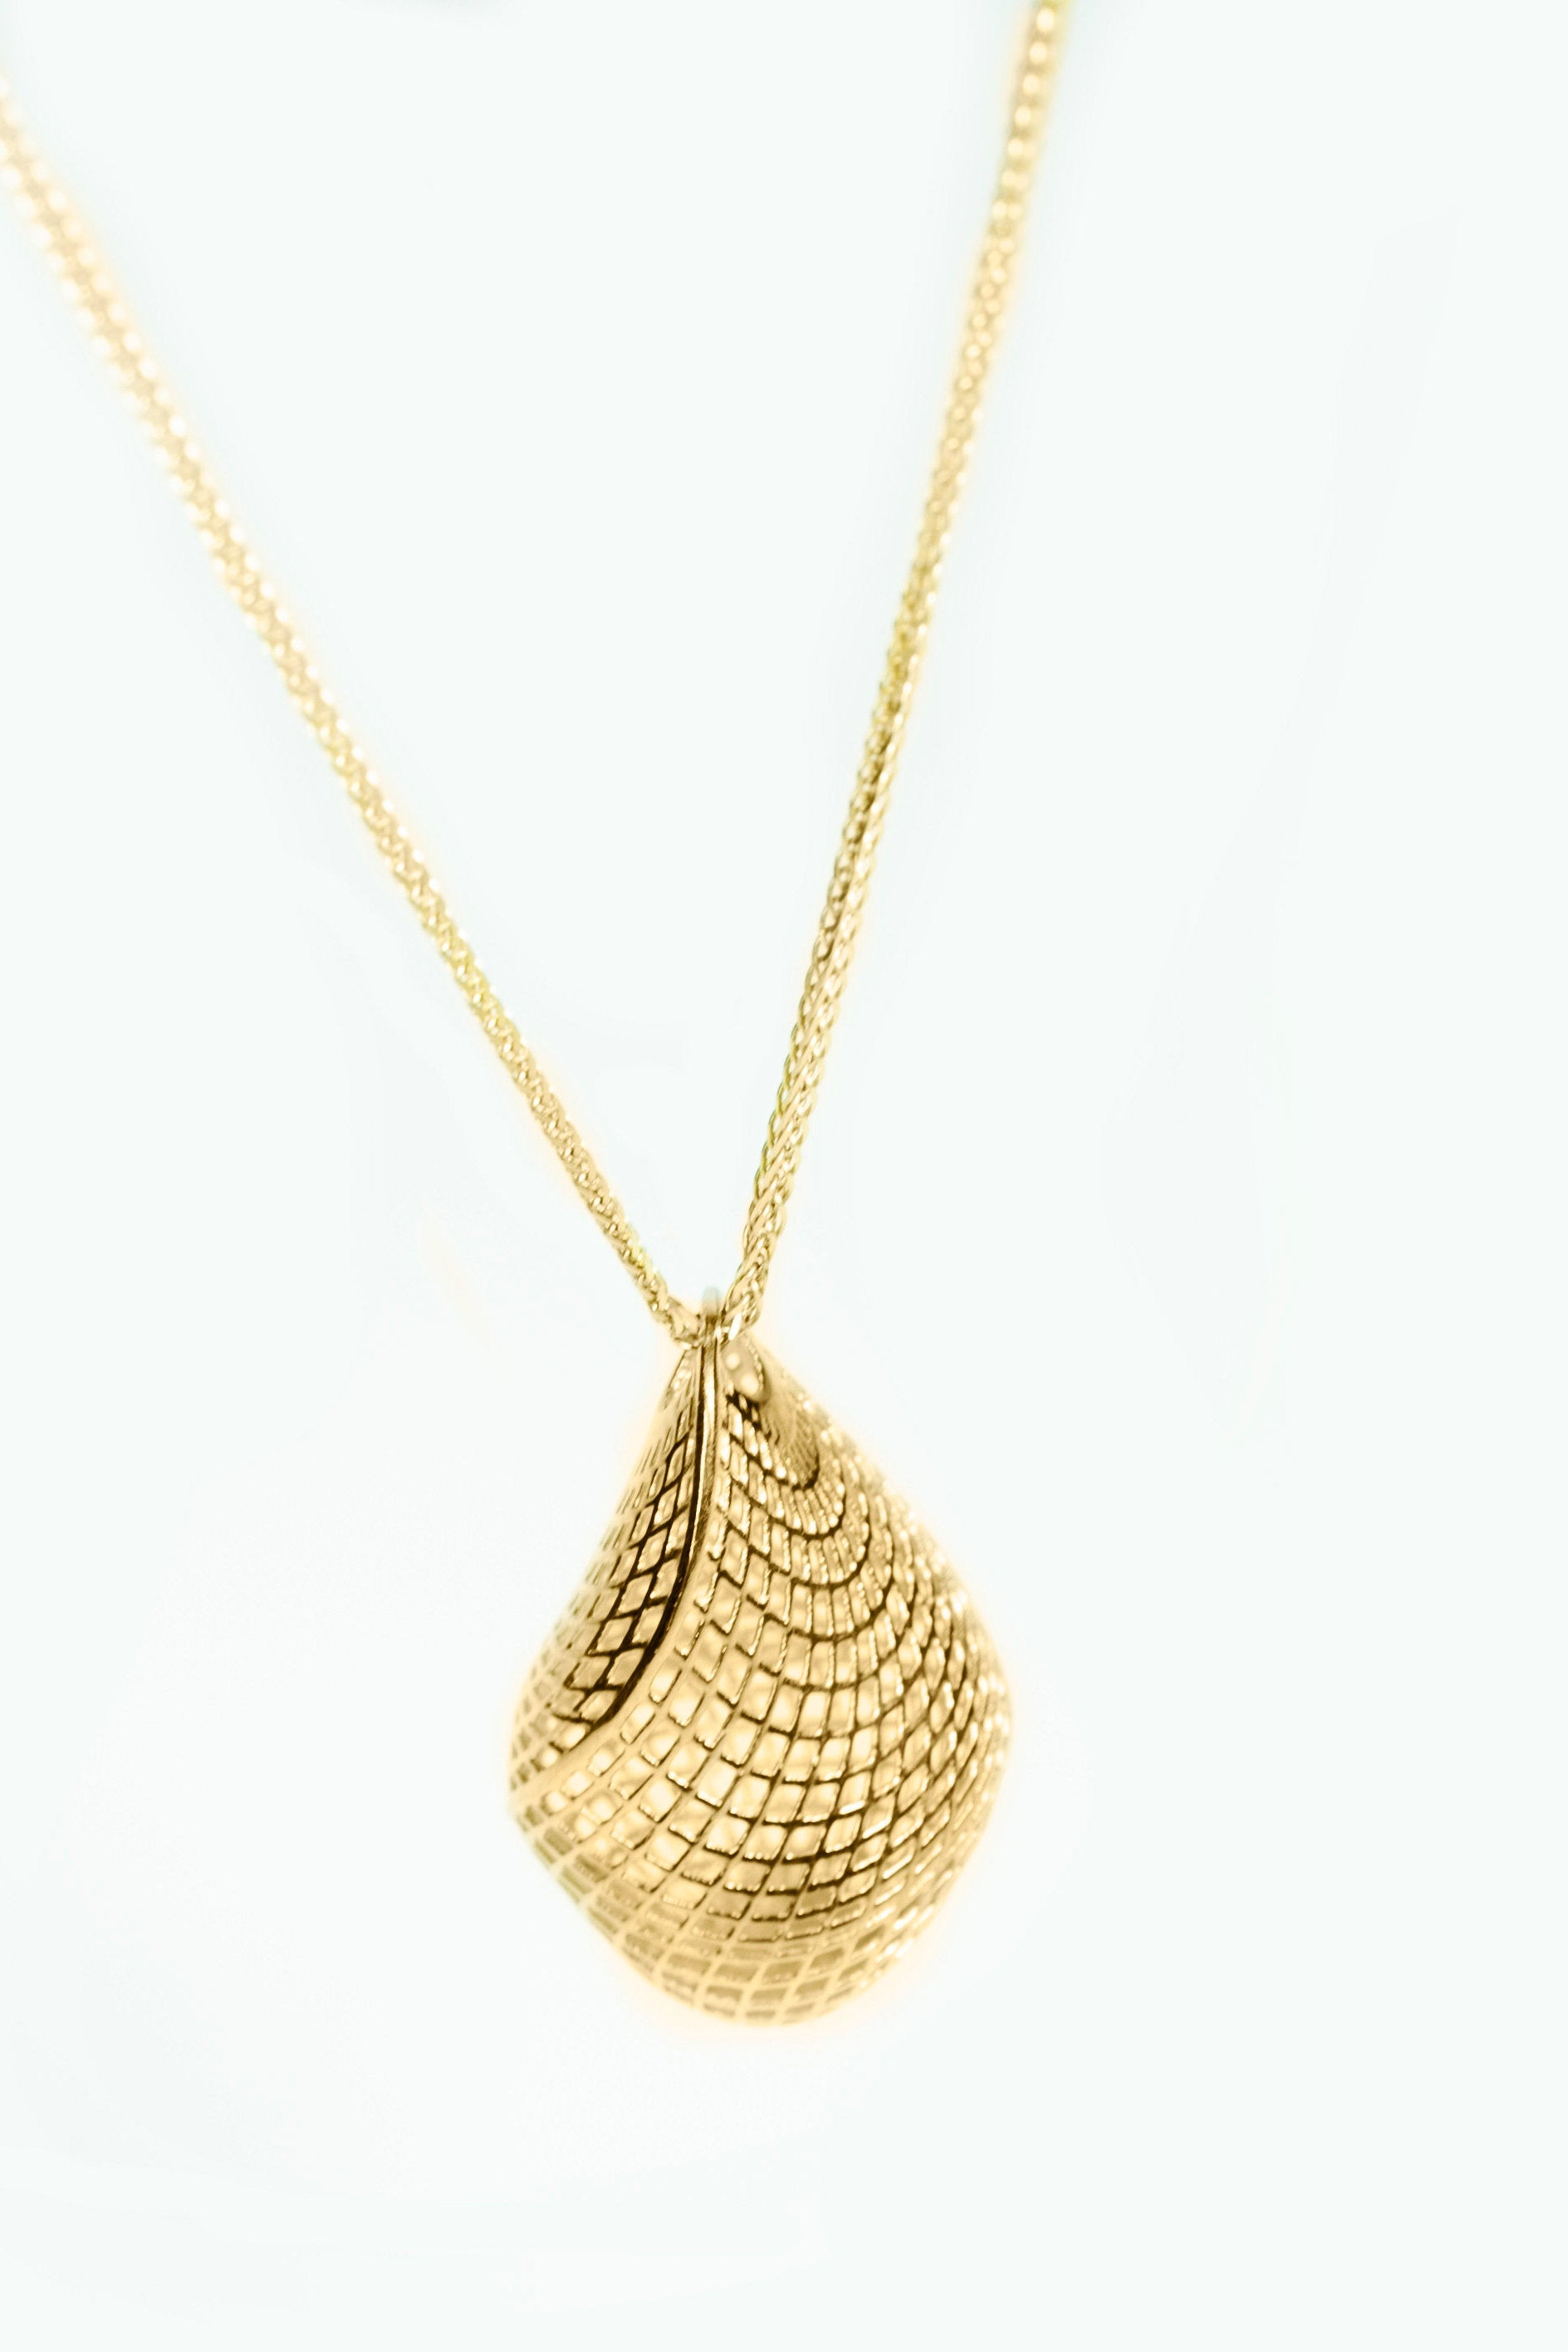 18k - Unique  Contemporary,  Statement Pendant for Women